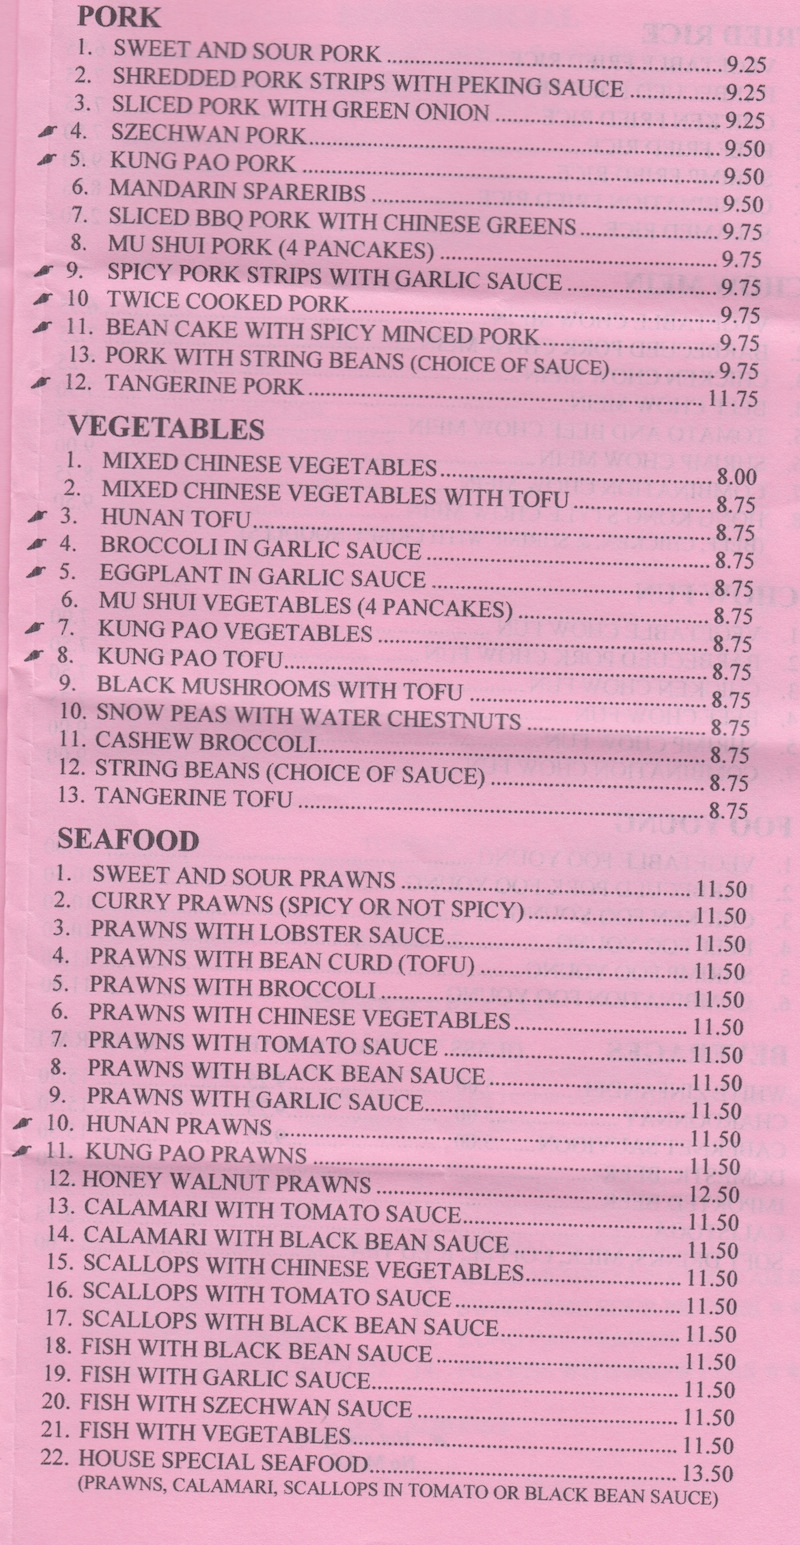 Scotts Valley Chinese Cuisine Menu - Pork Vegetables Seafood